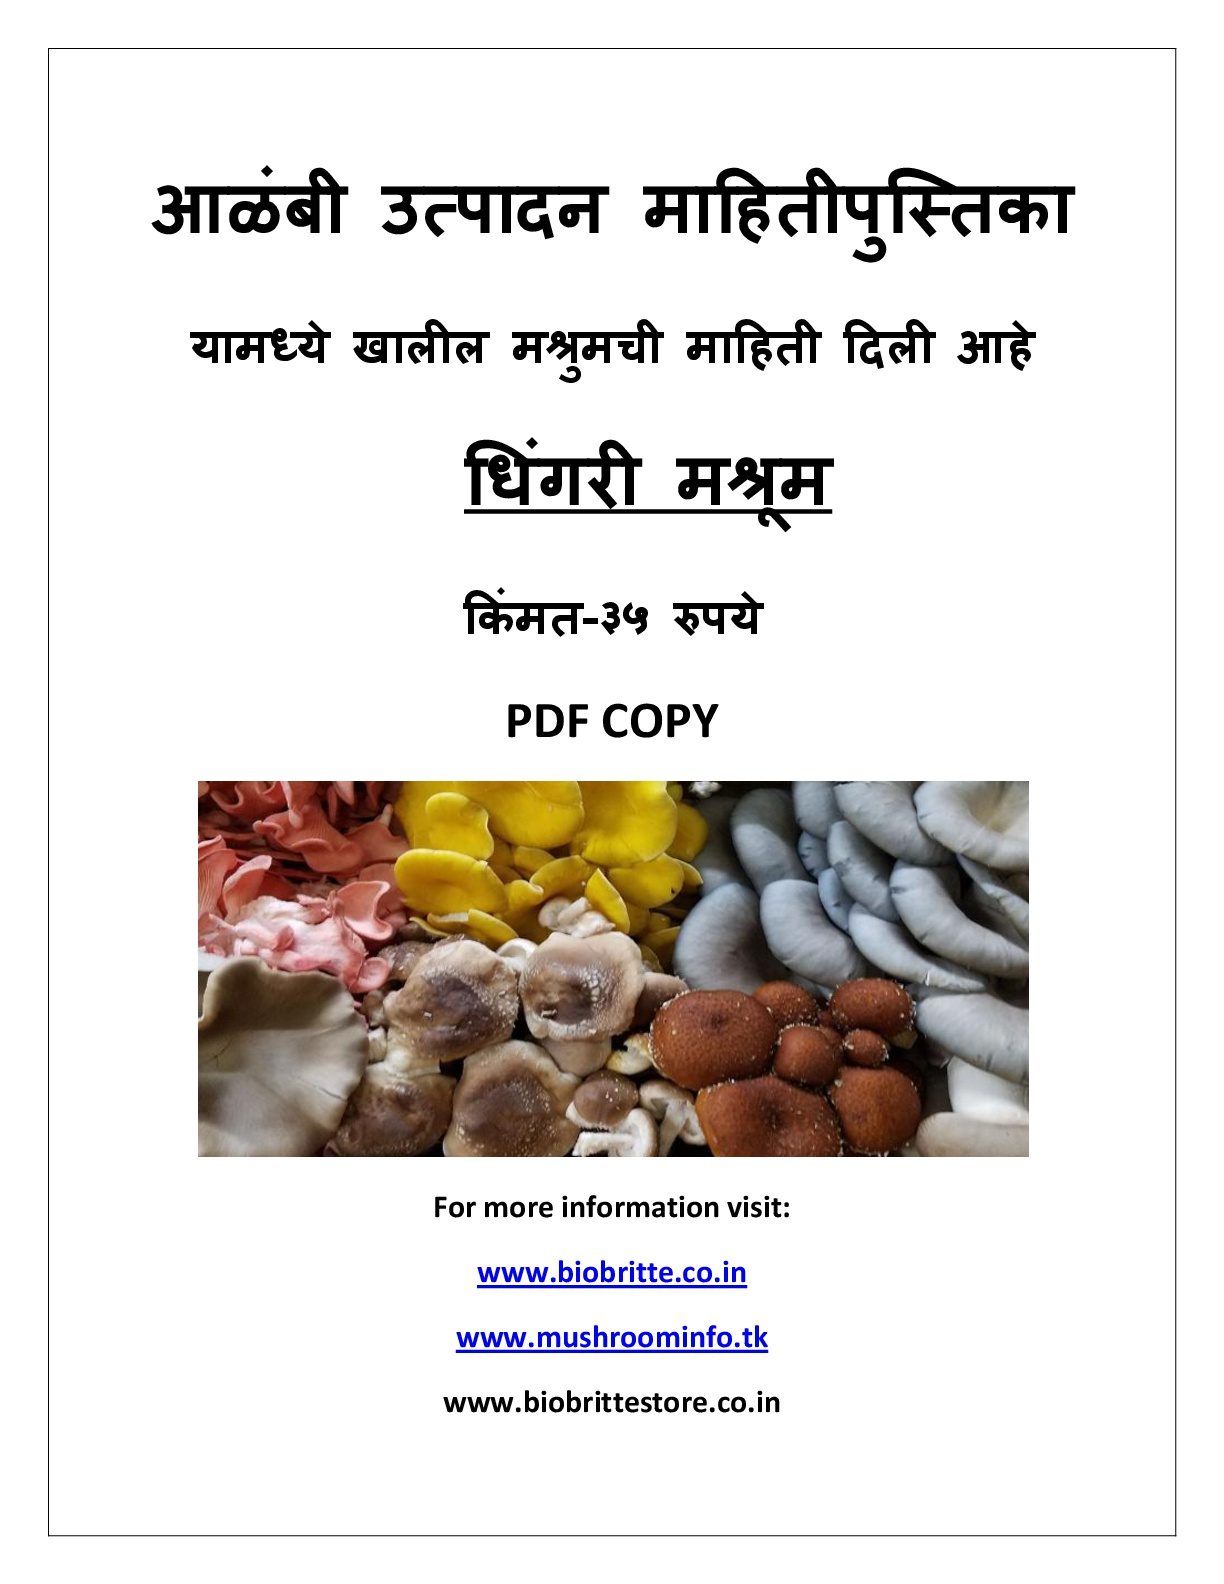 Oyster Mushroom Cultivation Book- Marathi Version- 79 Rs - Biobritte